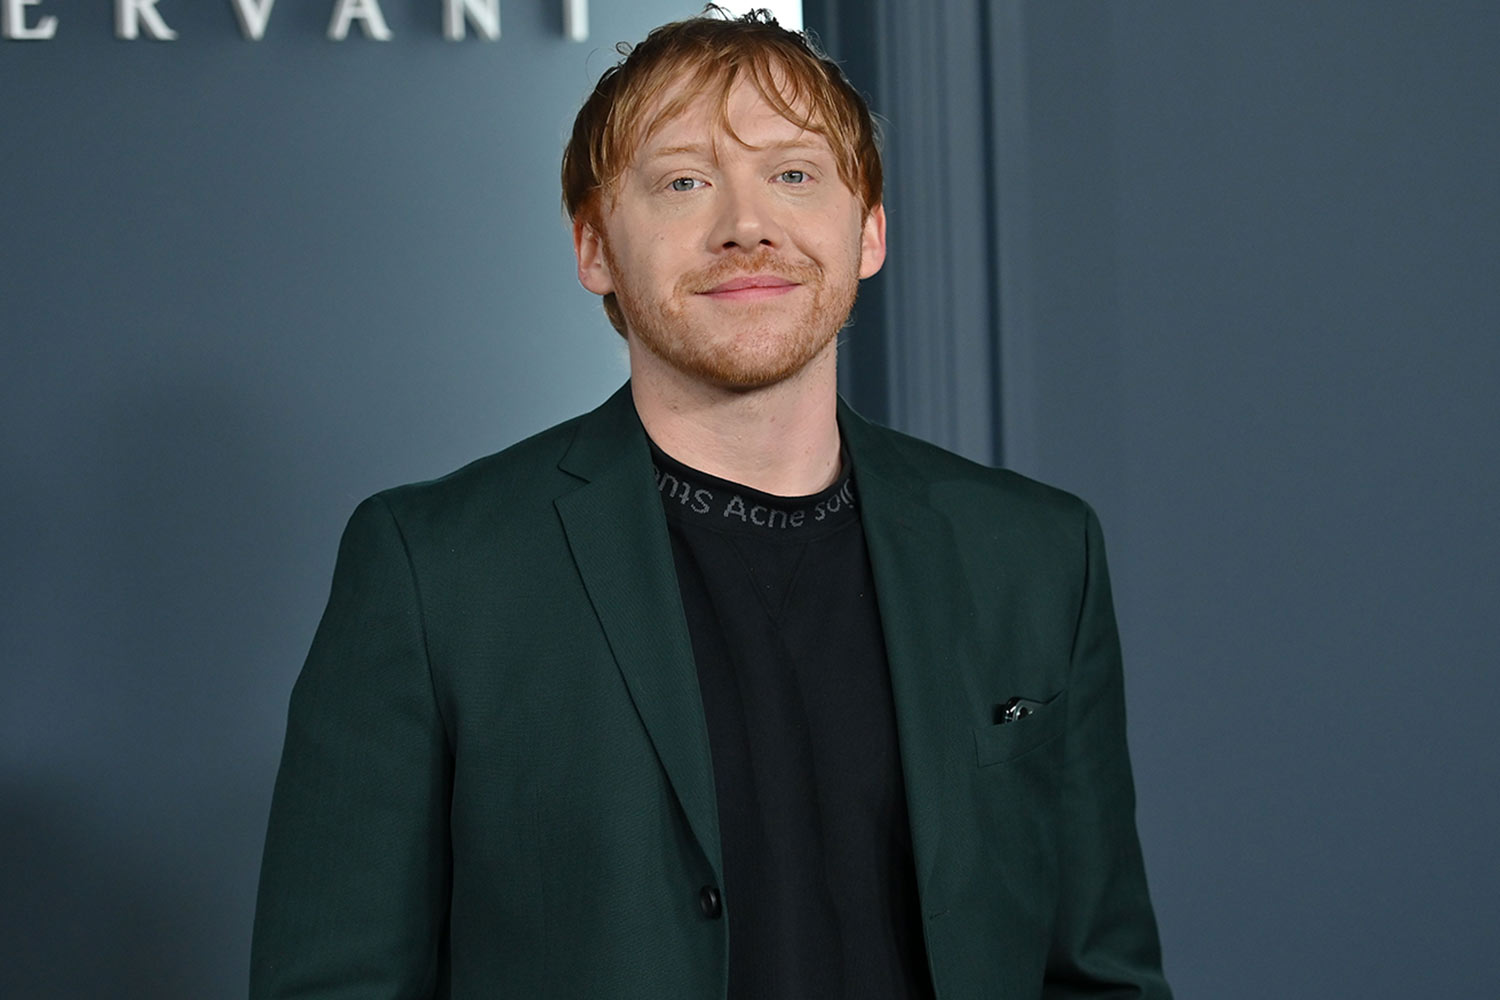 Rupert Grint 'Can't really Imagine'이 Harry Potter 시리즈로 돌아 가기 : 그러나 'Never Say Never'